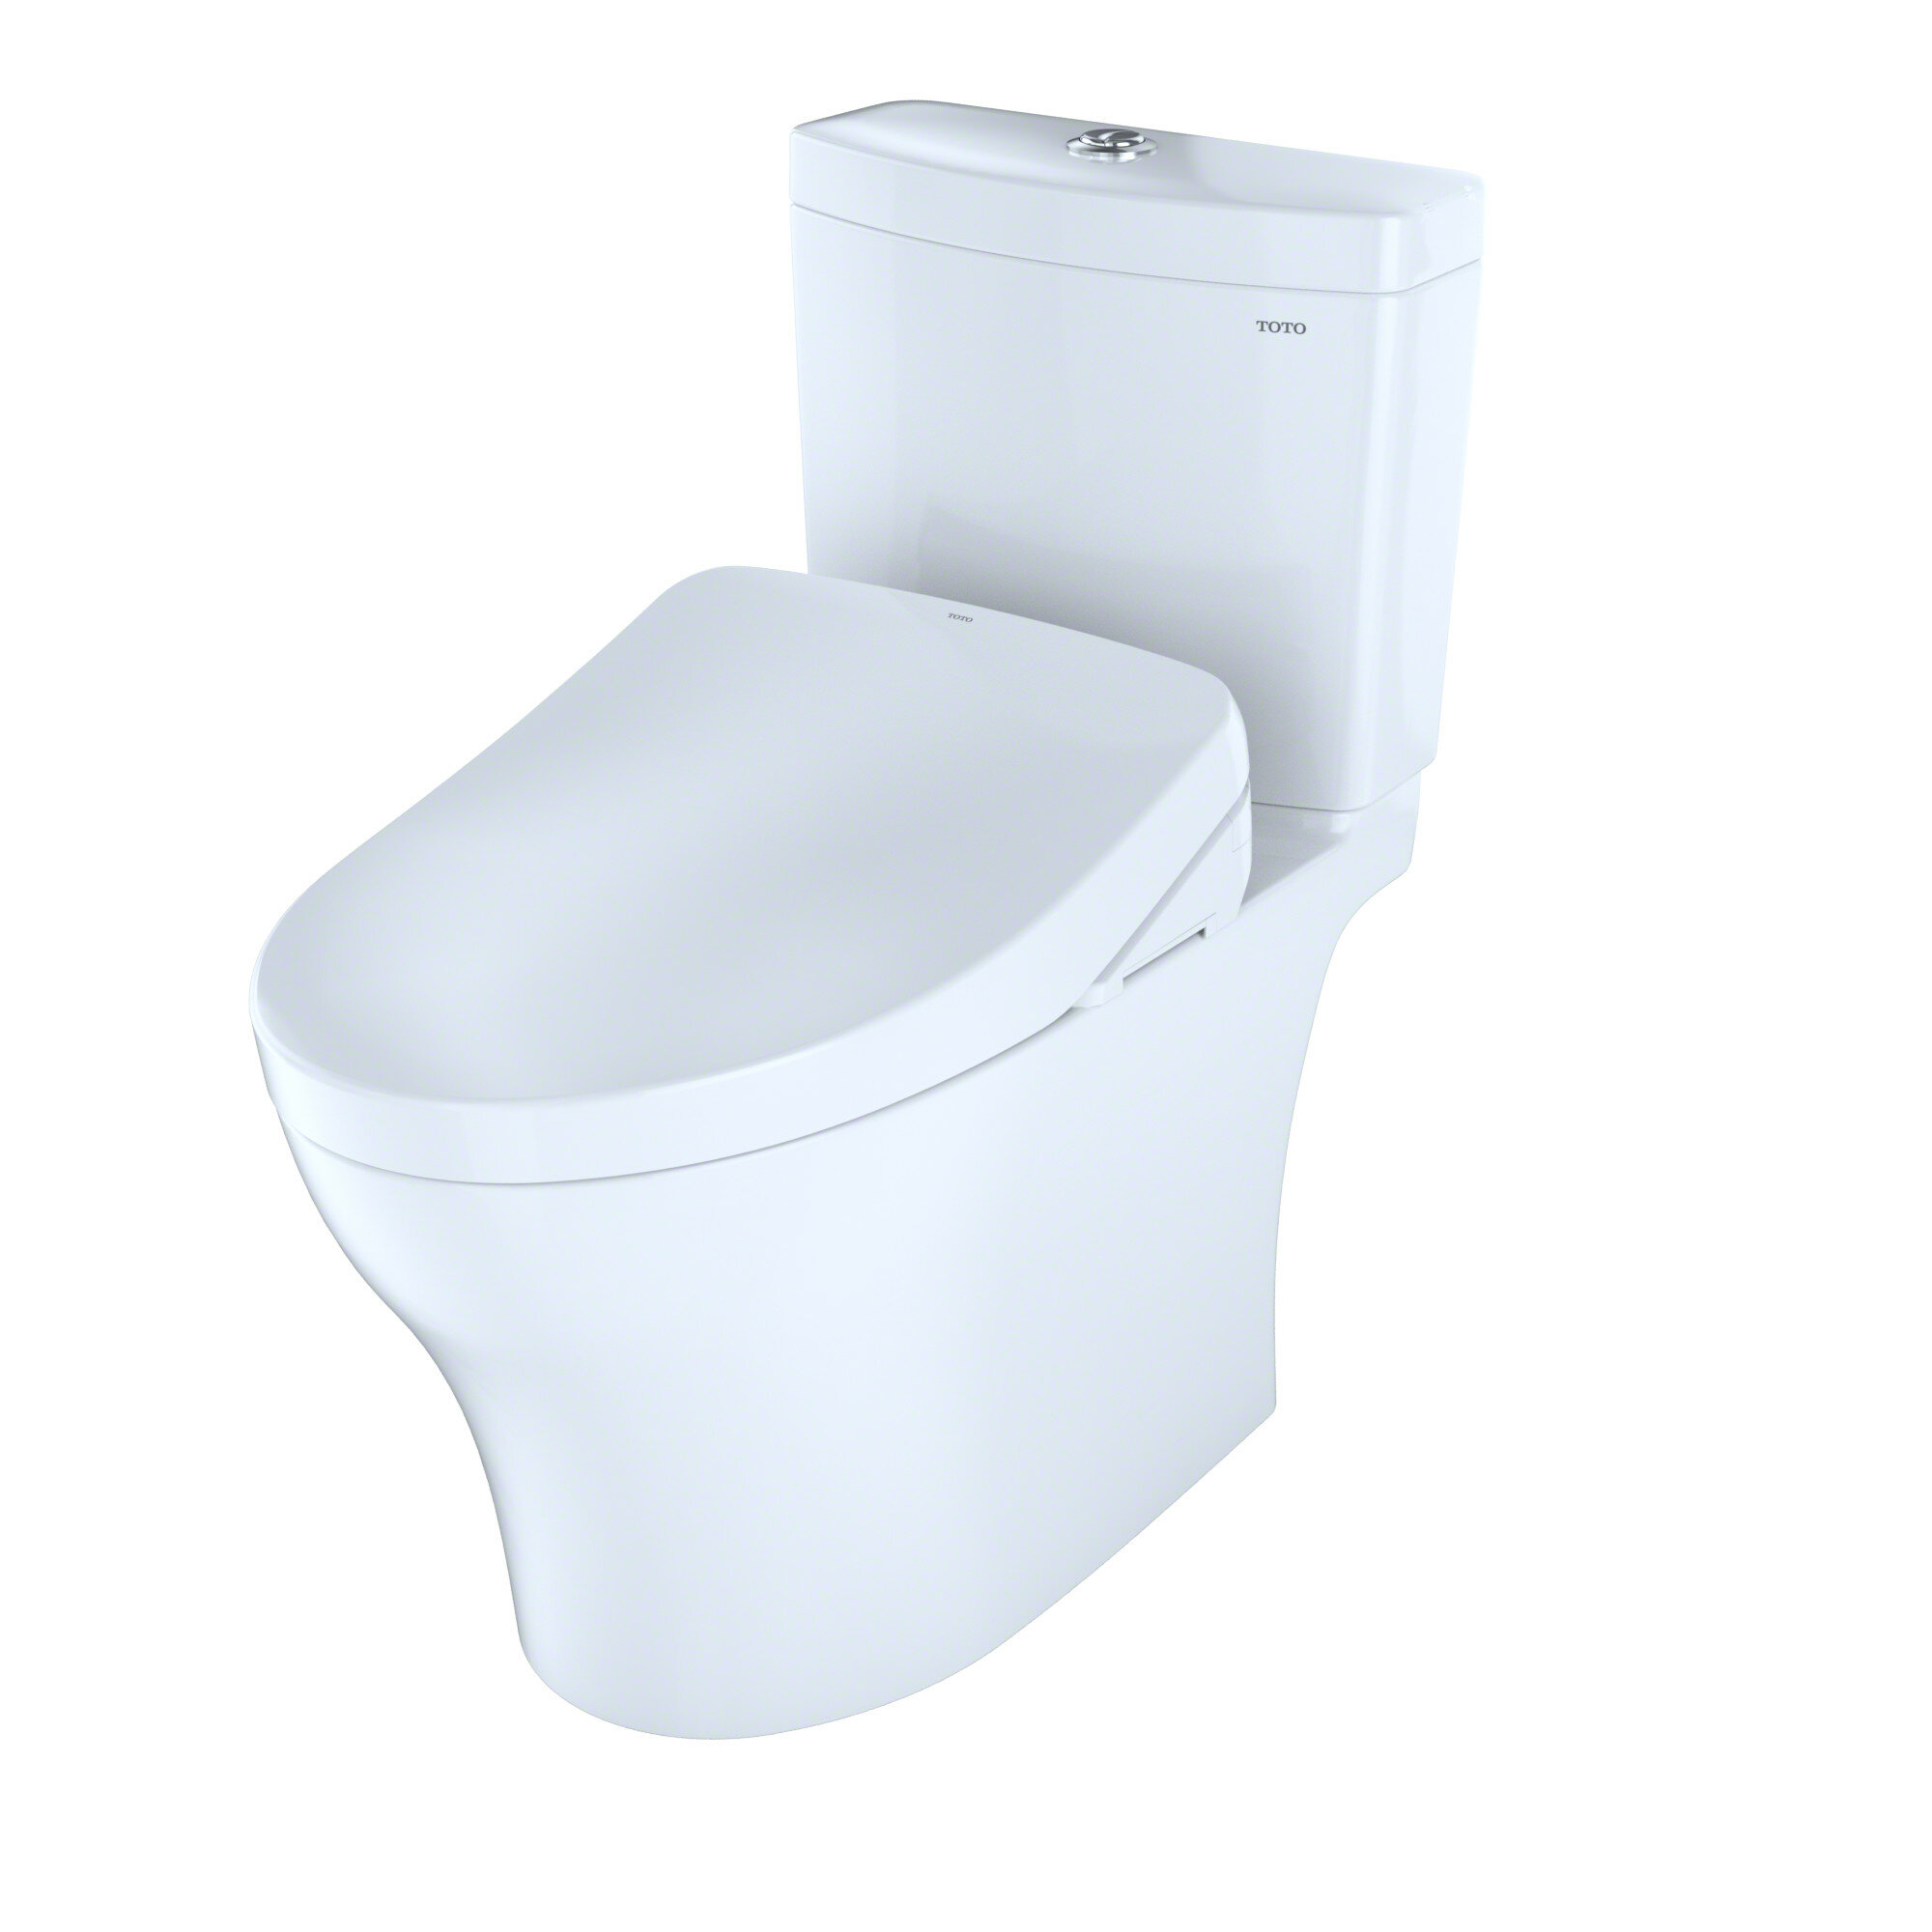 Pleasant Aquia Iv Dual Flush 1 28 0 8 Gpf Elongated Two Piece Toilet With S550E Electronic Bidet Seat Short Links Chair Design For Home Short Linksinfo